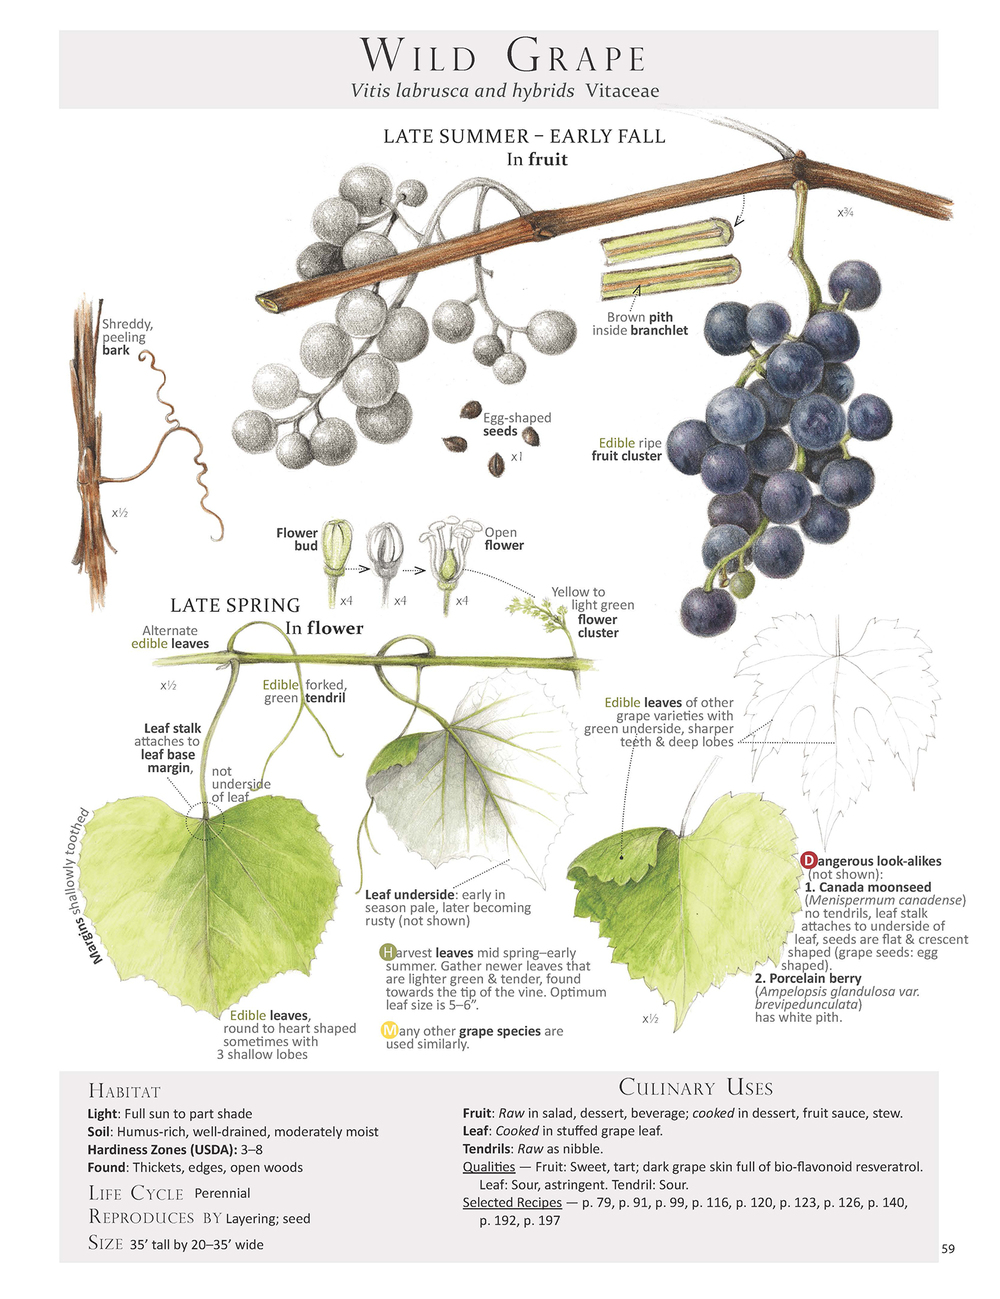 Wild Grape - Vitis labrusca